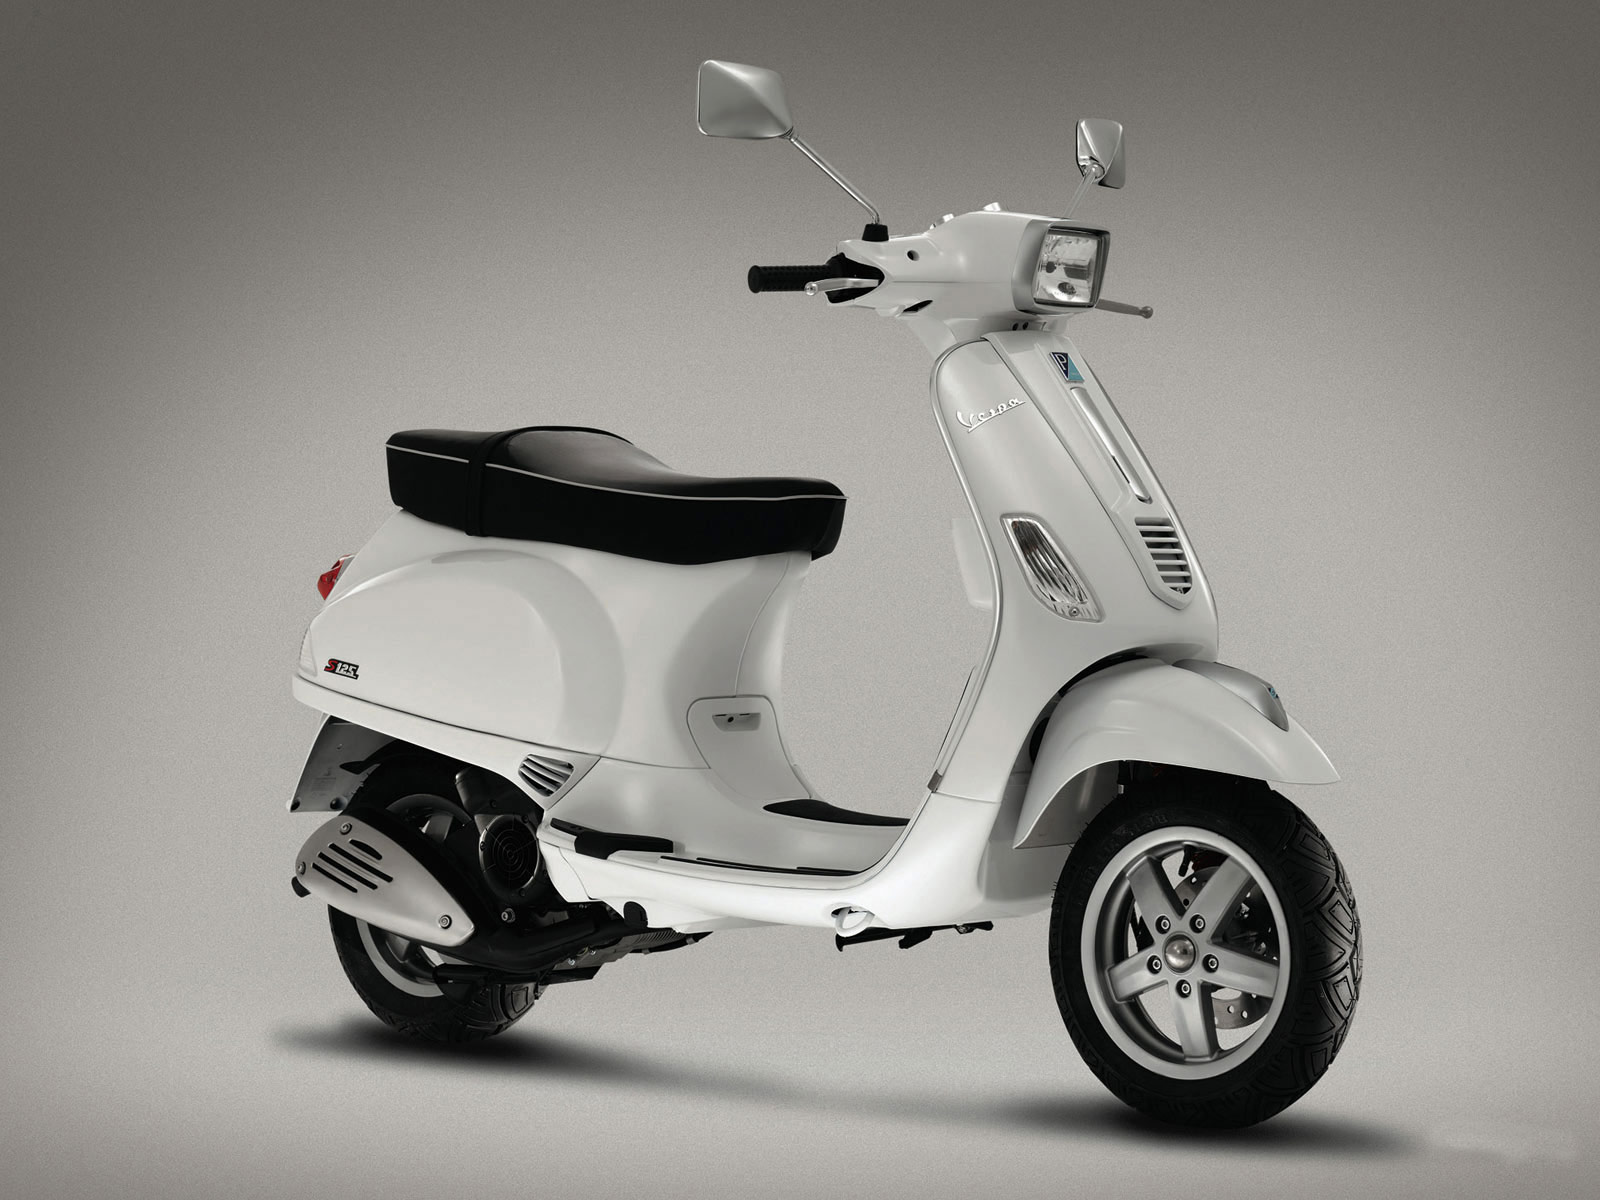 Motor Scooter Guide | Piaggio MP3 Series (250, 300, 400 and 500)